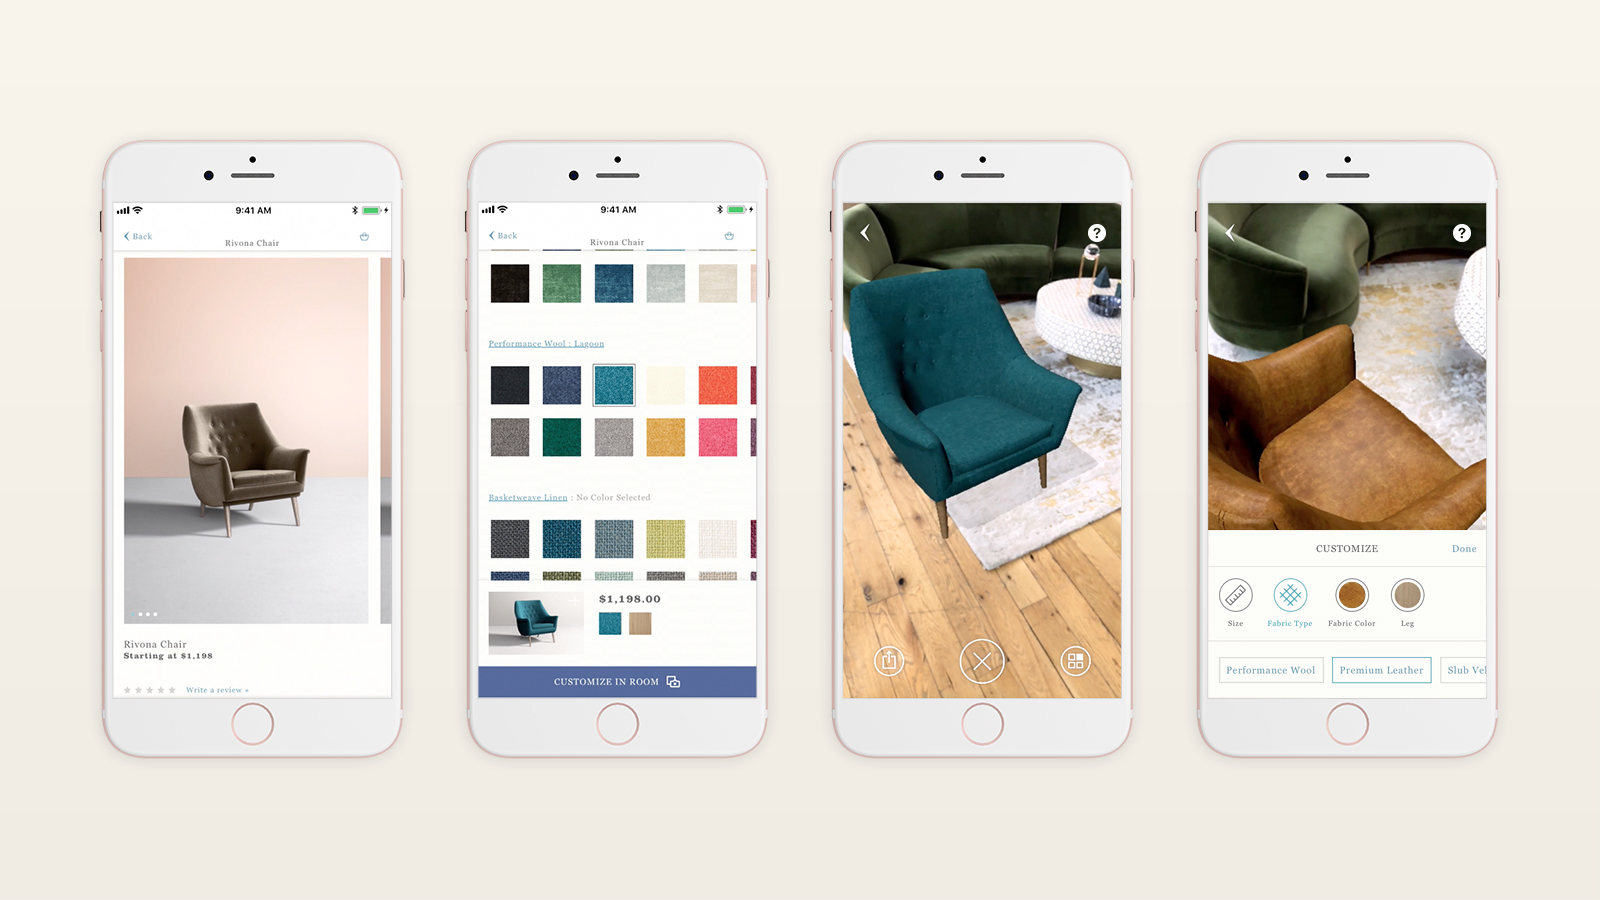 Design Your Living Room anthropologie hands you ar and cgi tools to design your living room